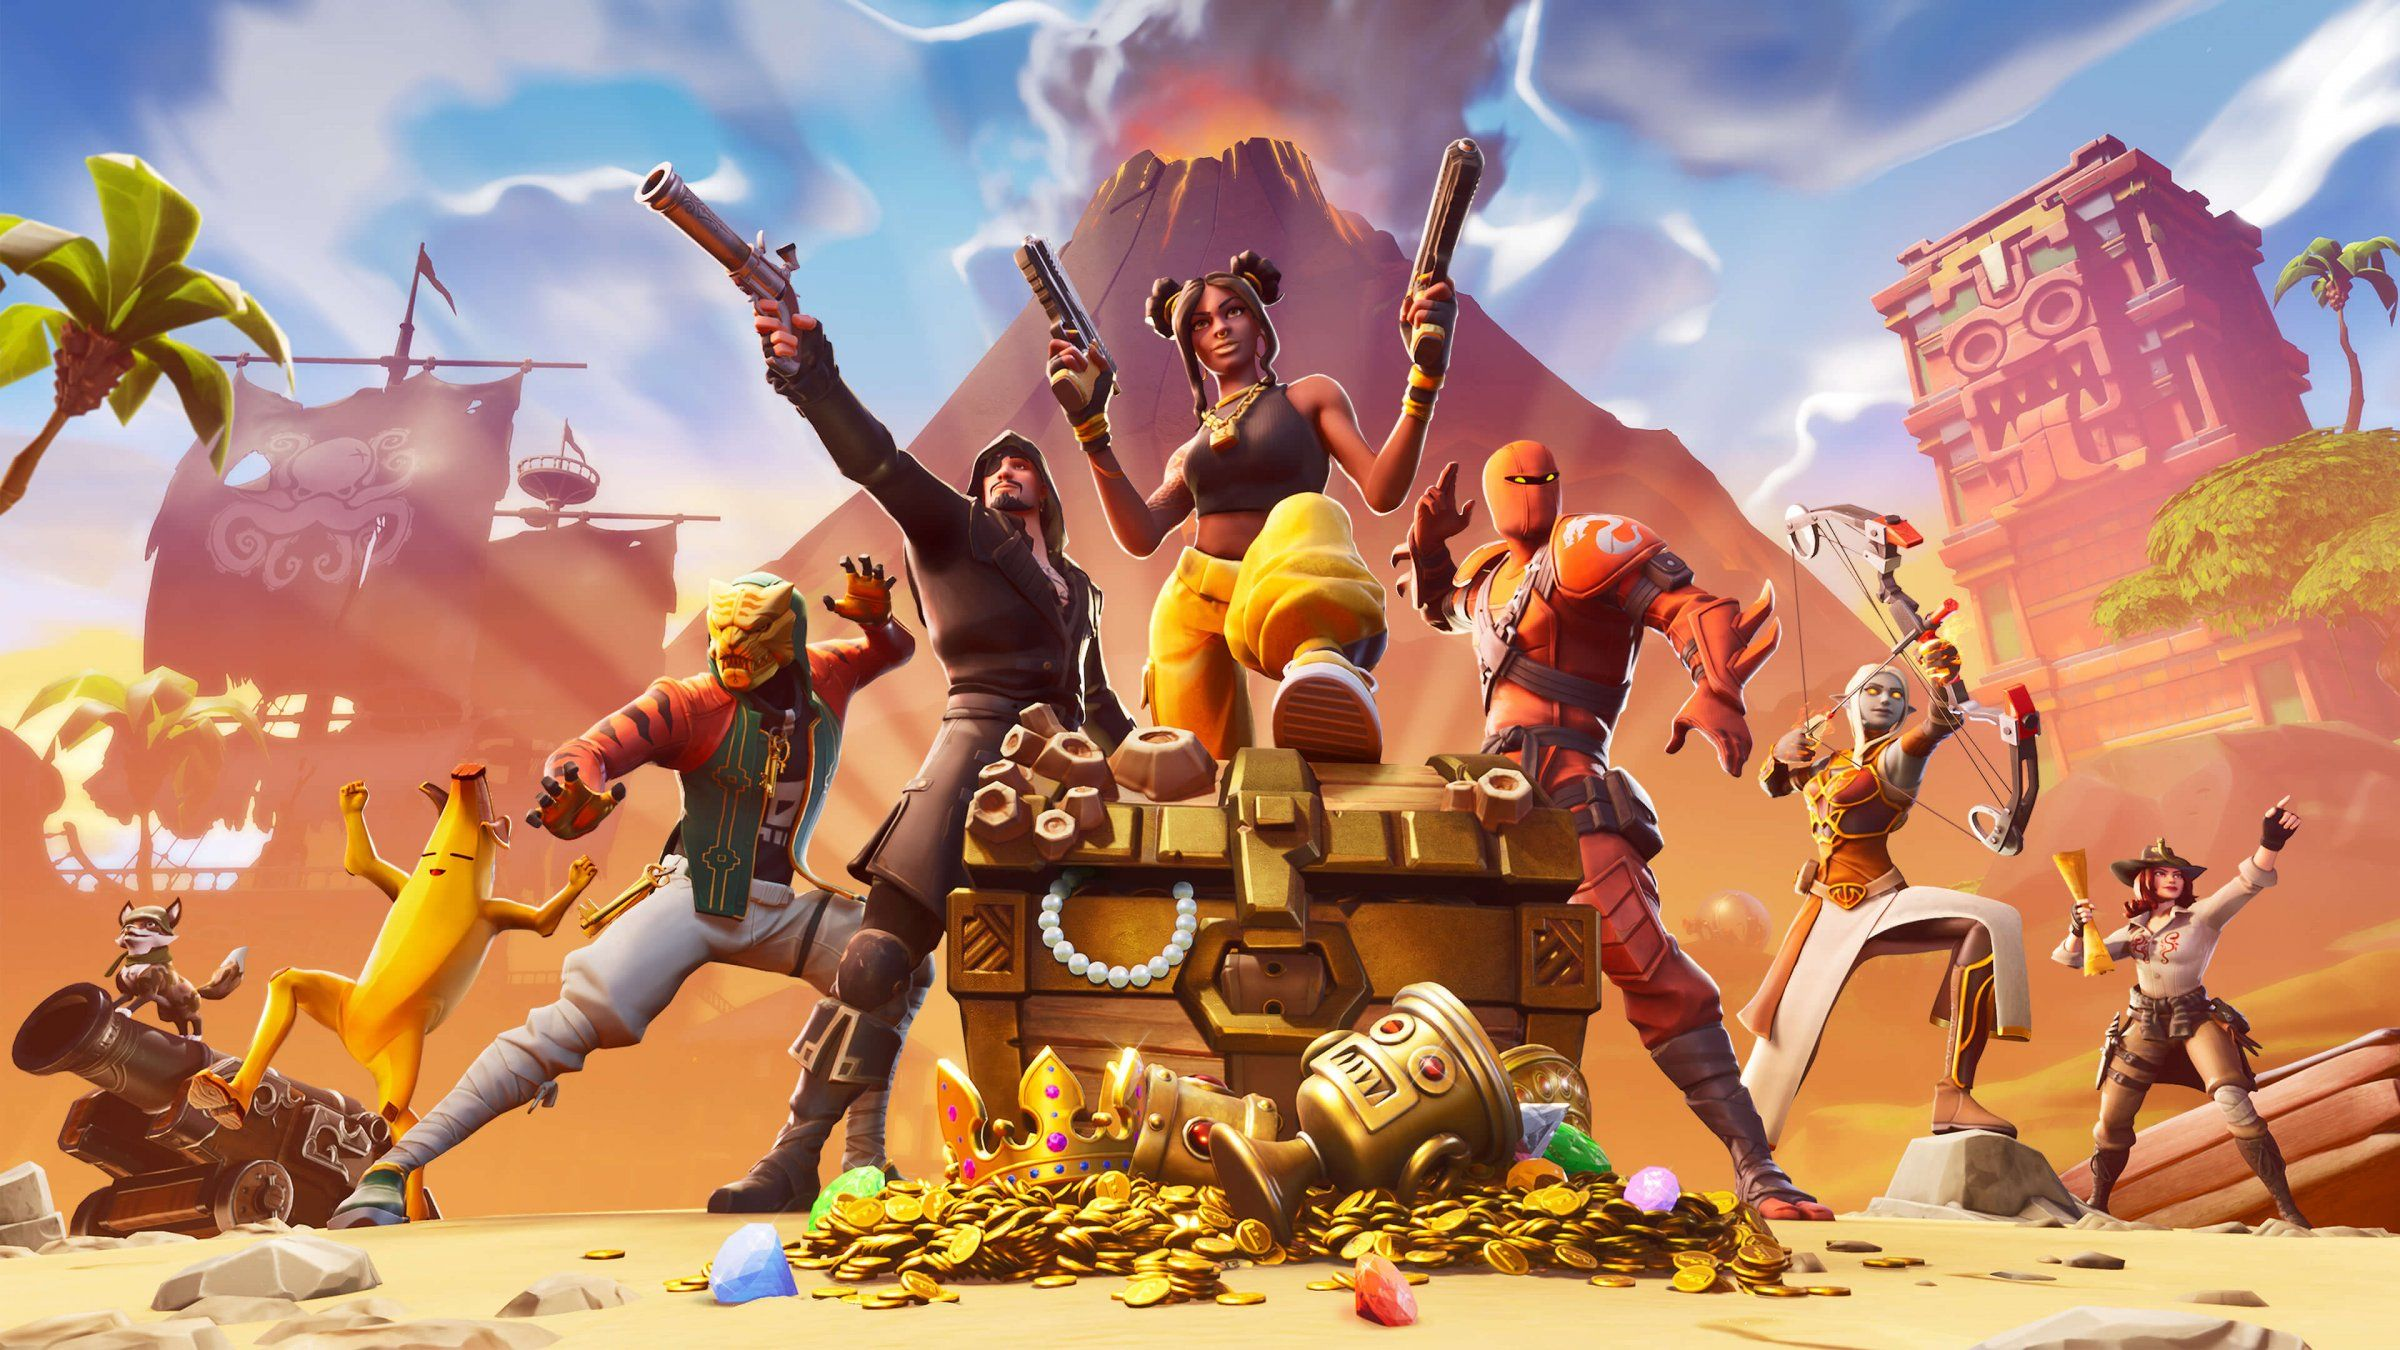 Fortnite Season 8 Launches Today With New Skins New Map Locations